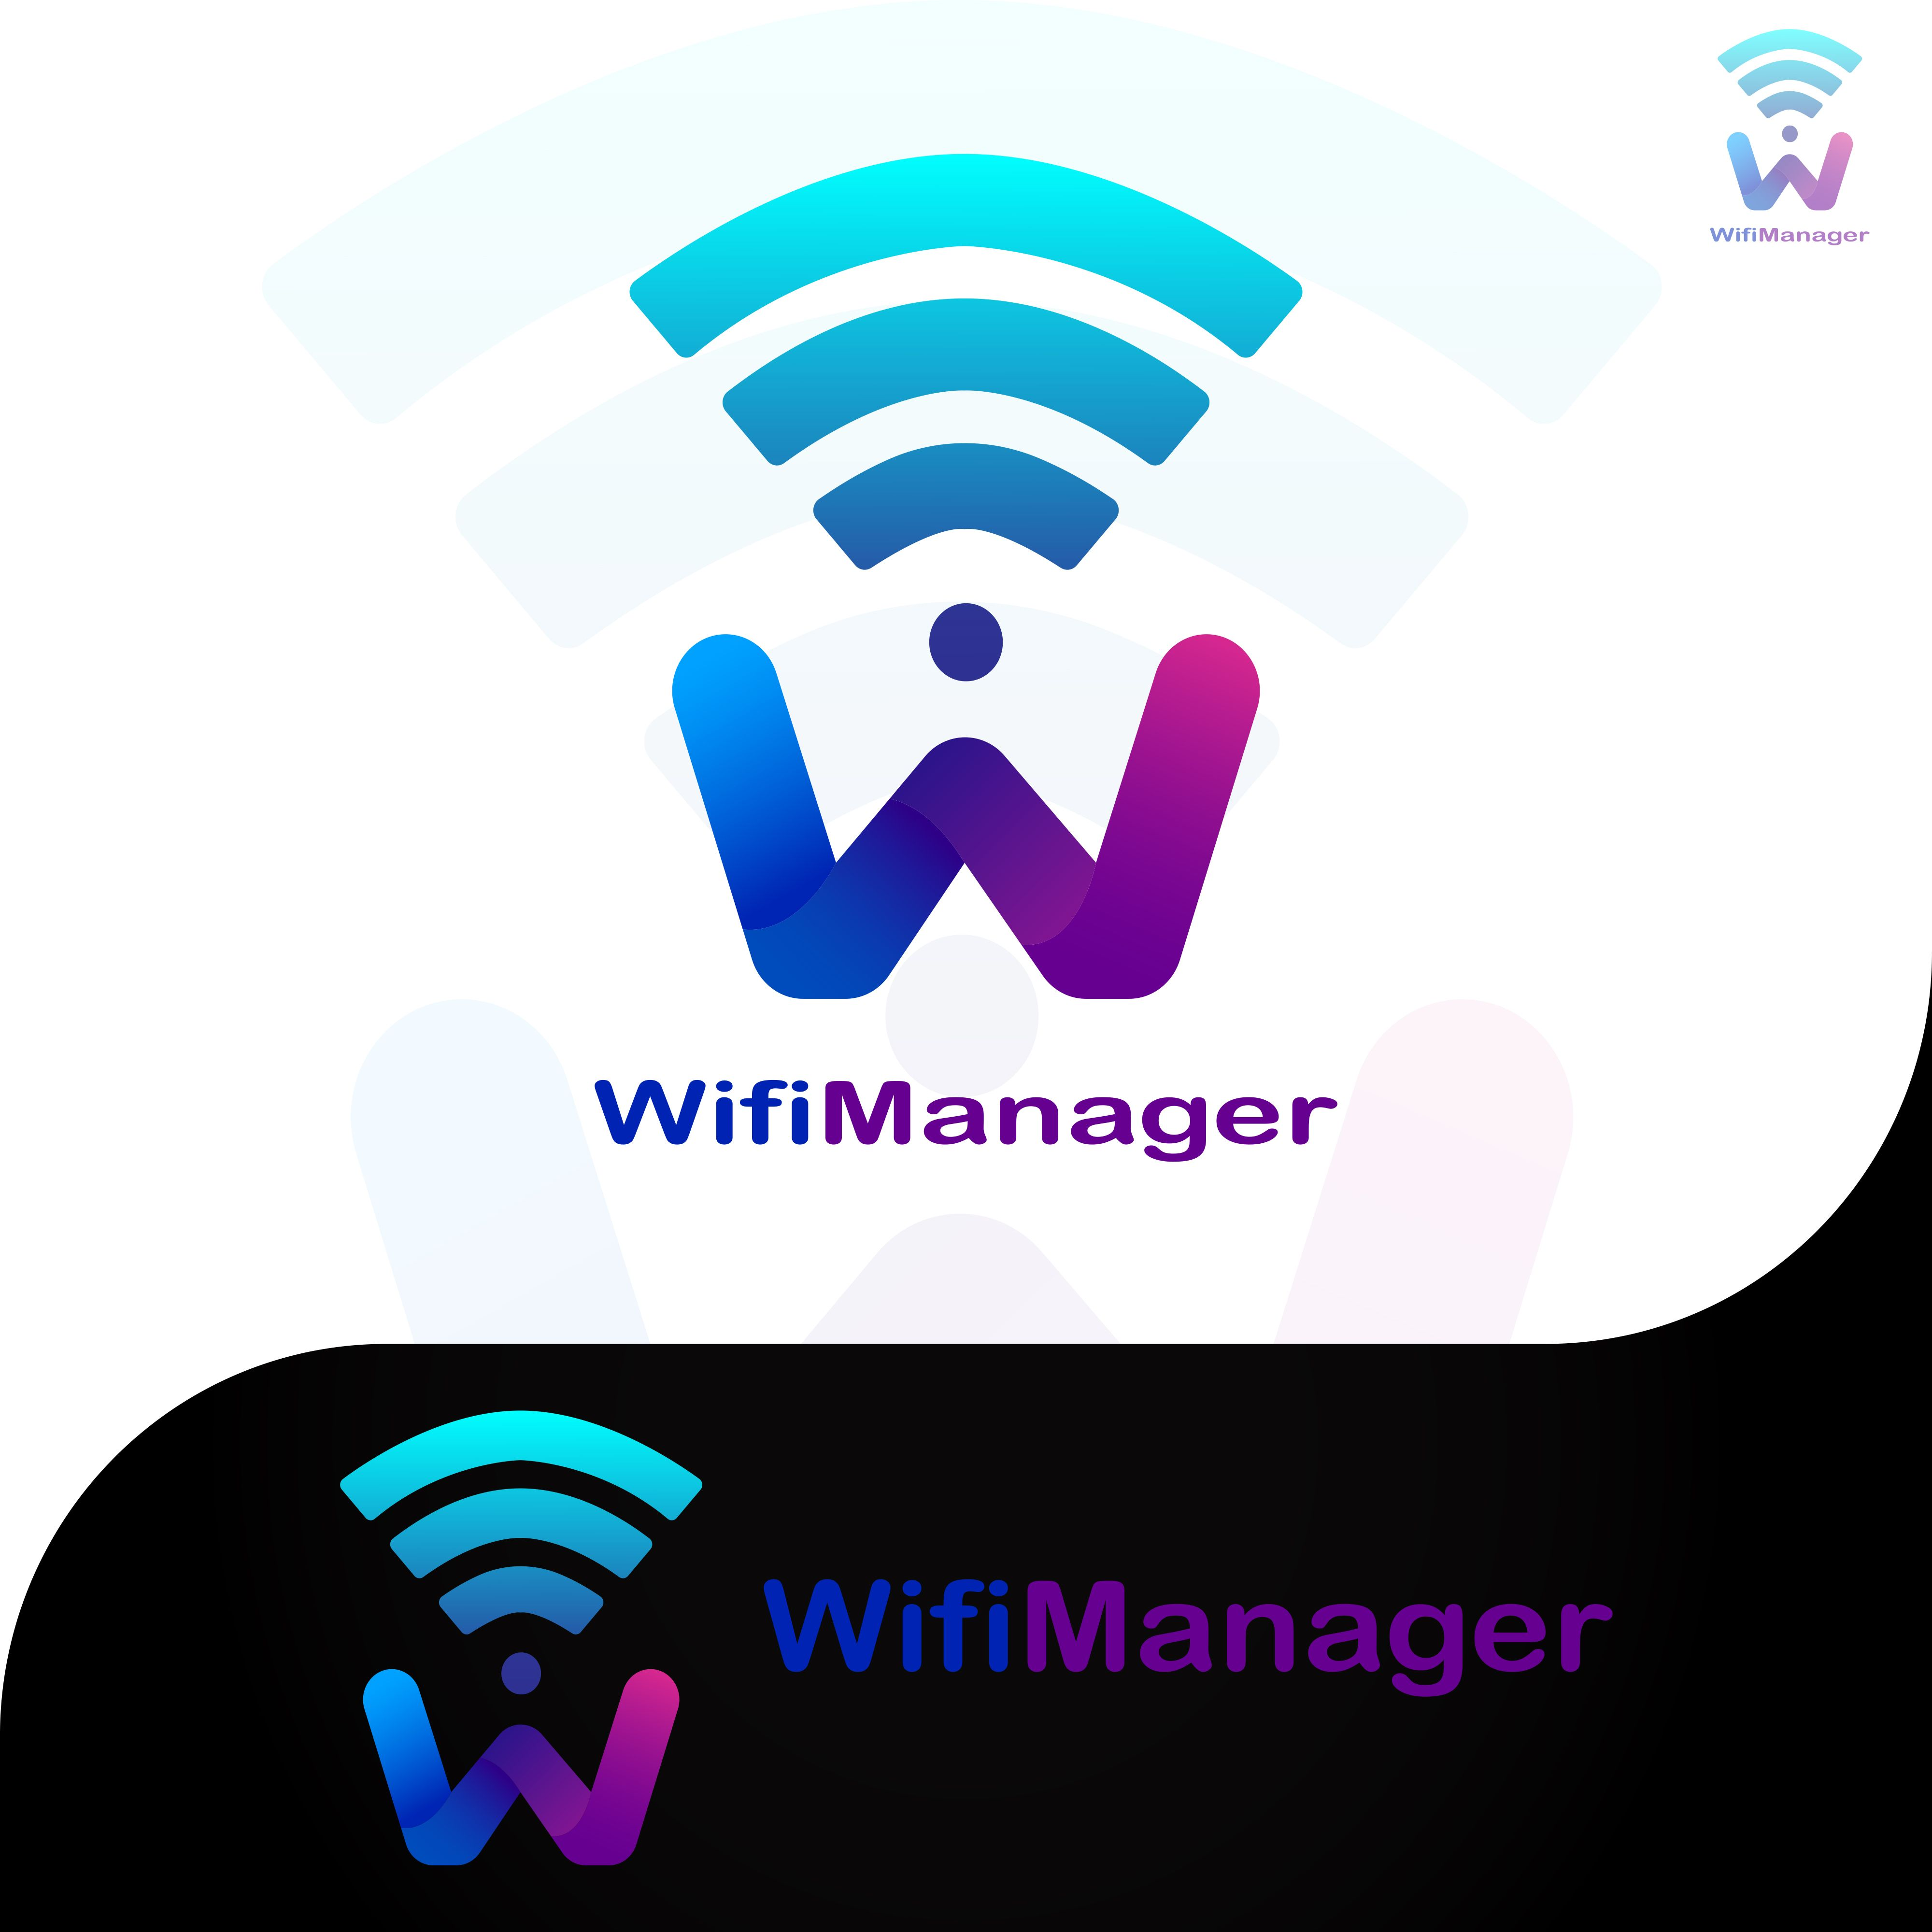 Wifi Manager Logo Logos Stock Images Free Creative Business